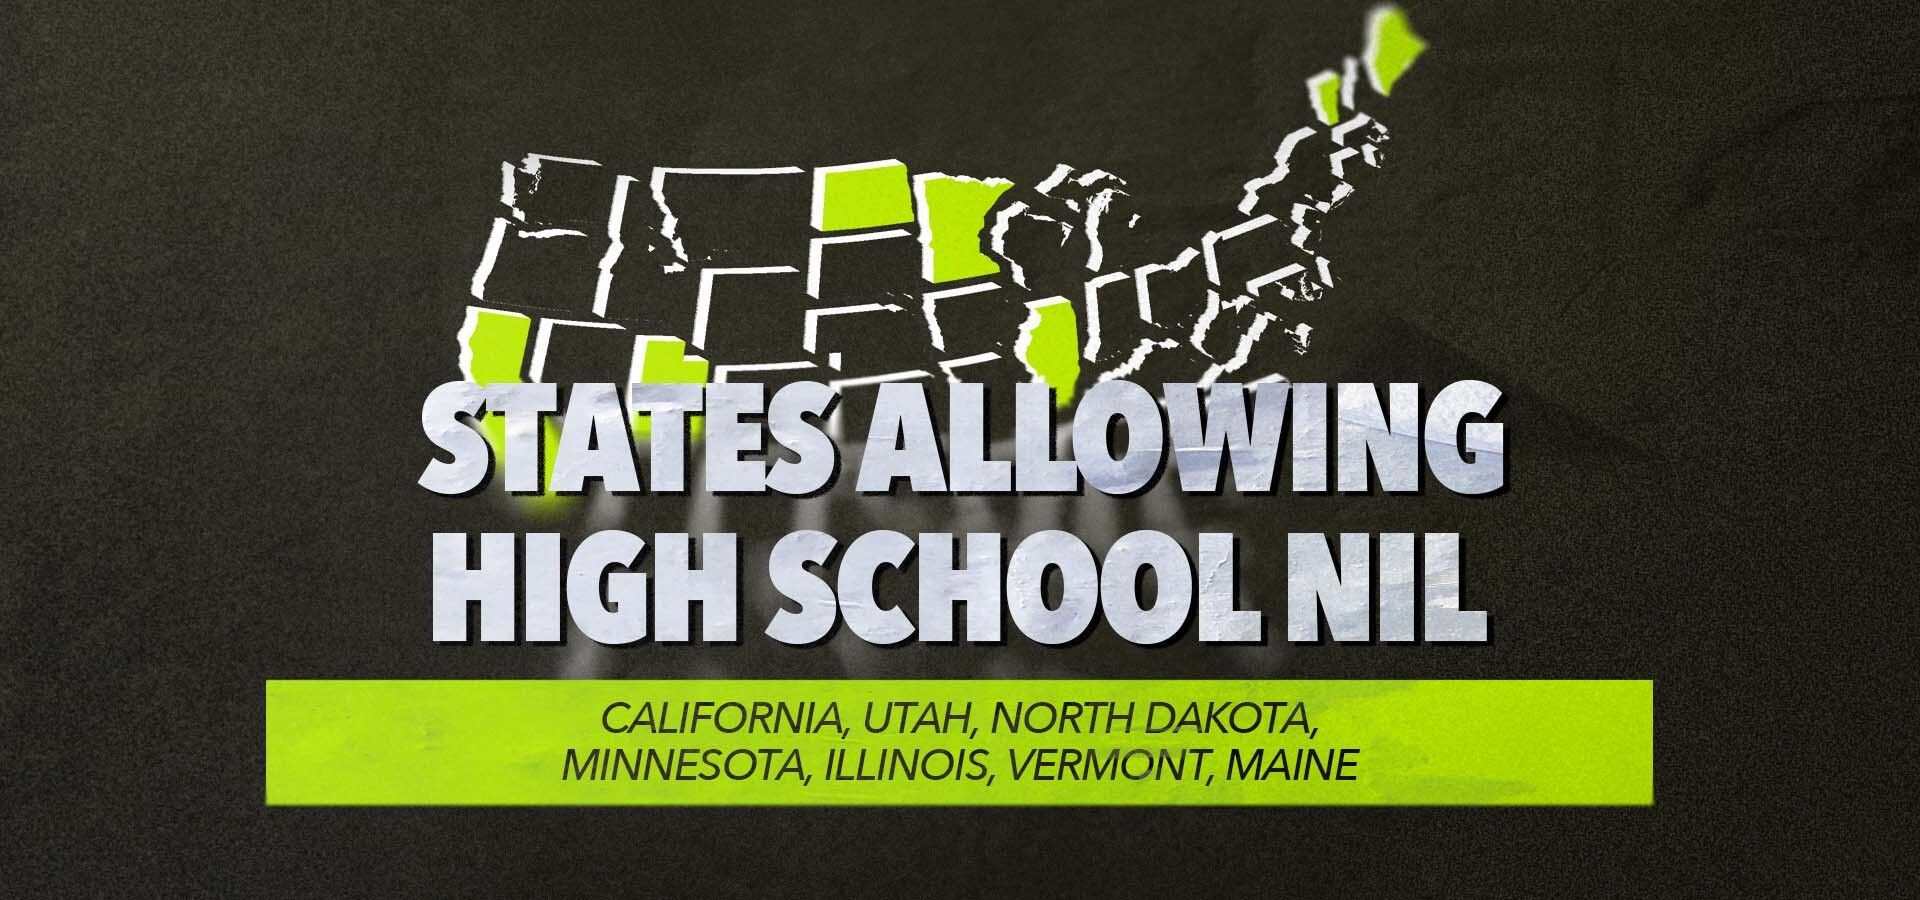 NIL In High School: Which States Give HS Athletes Name, Image, Likeness Rights?